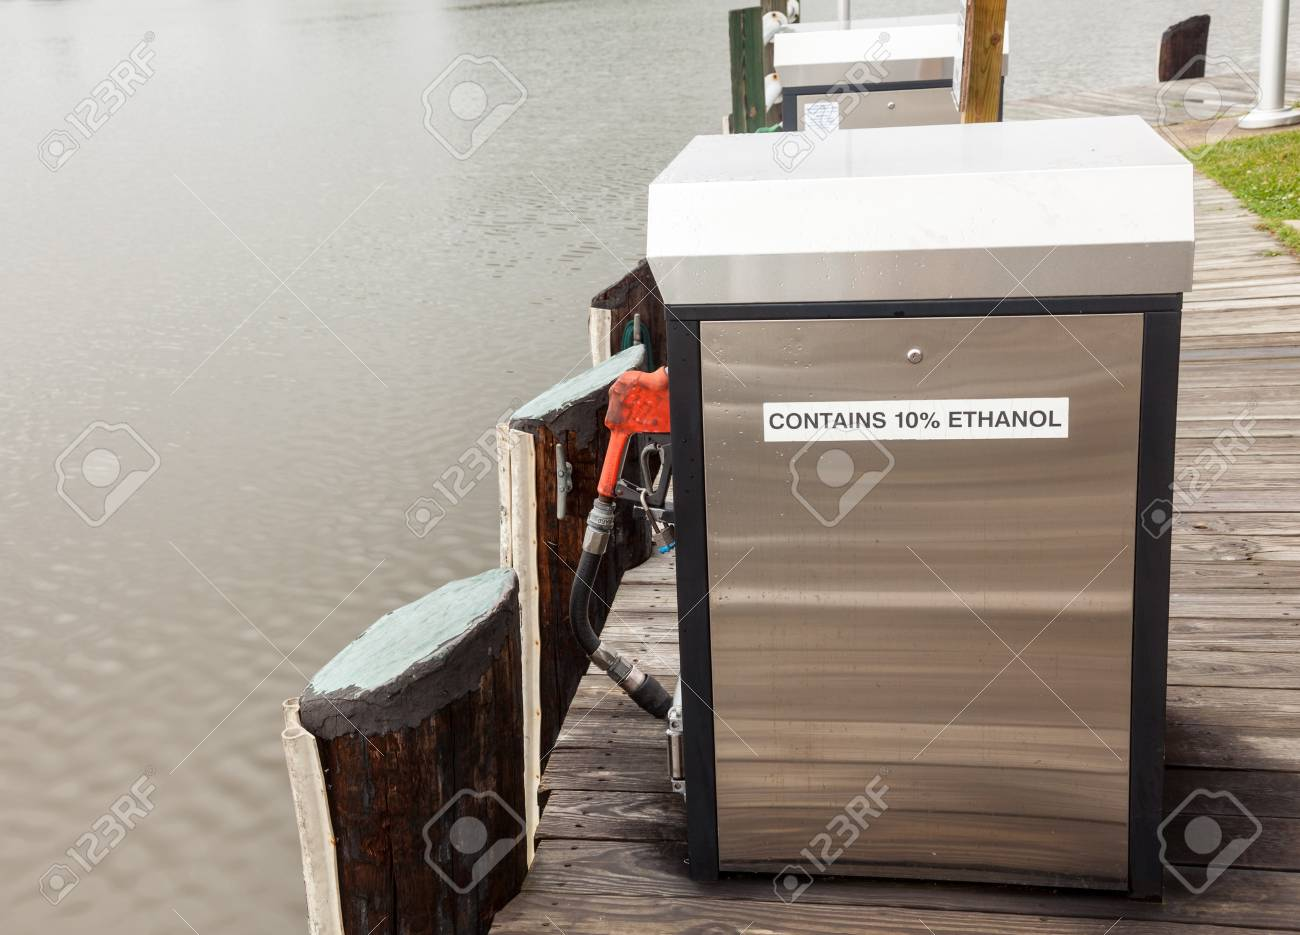 Gasoline pump with ethanol by side of marina for refueling boats Stock Photo - 13865349